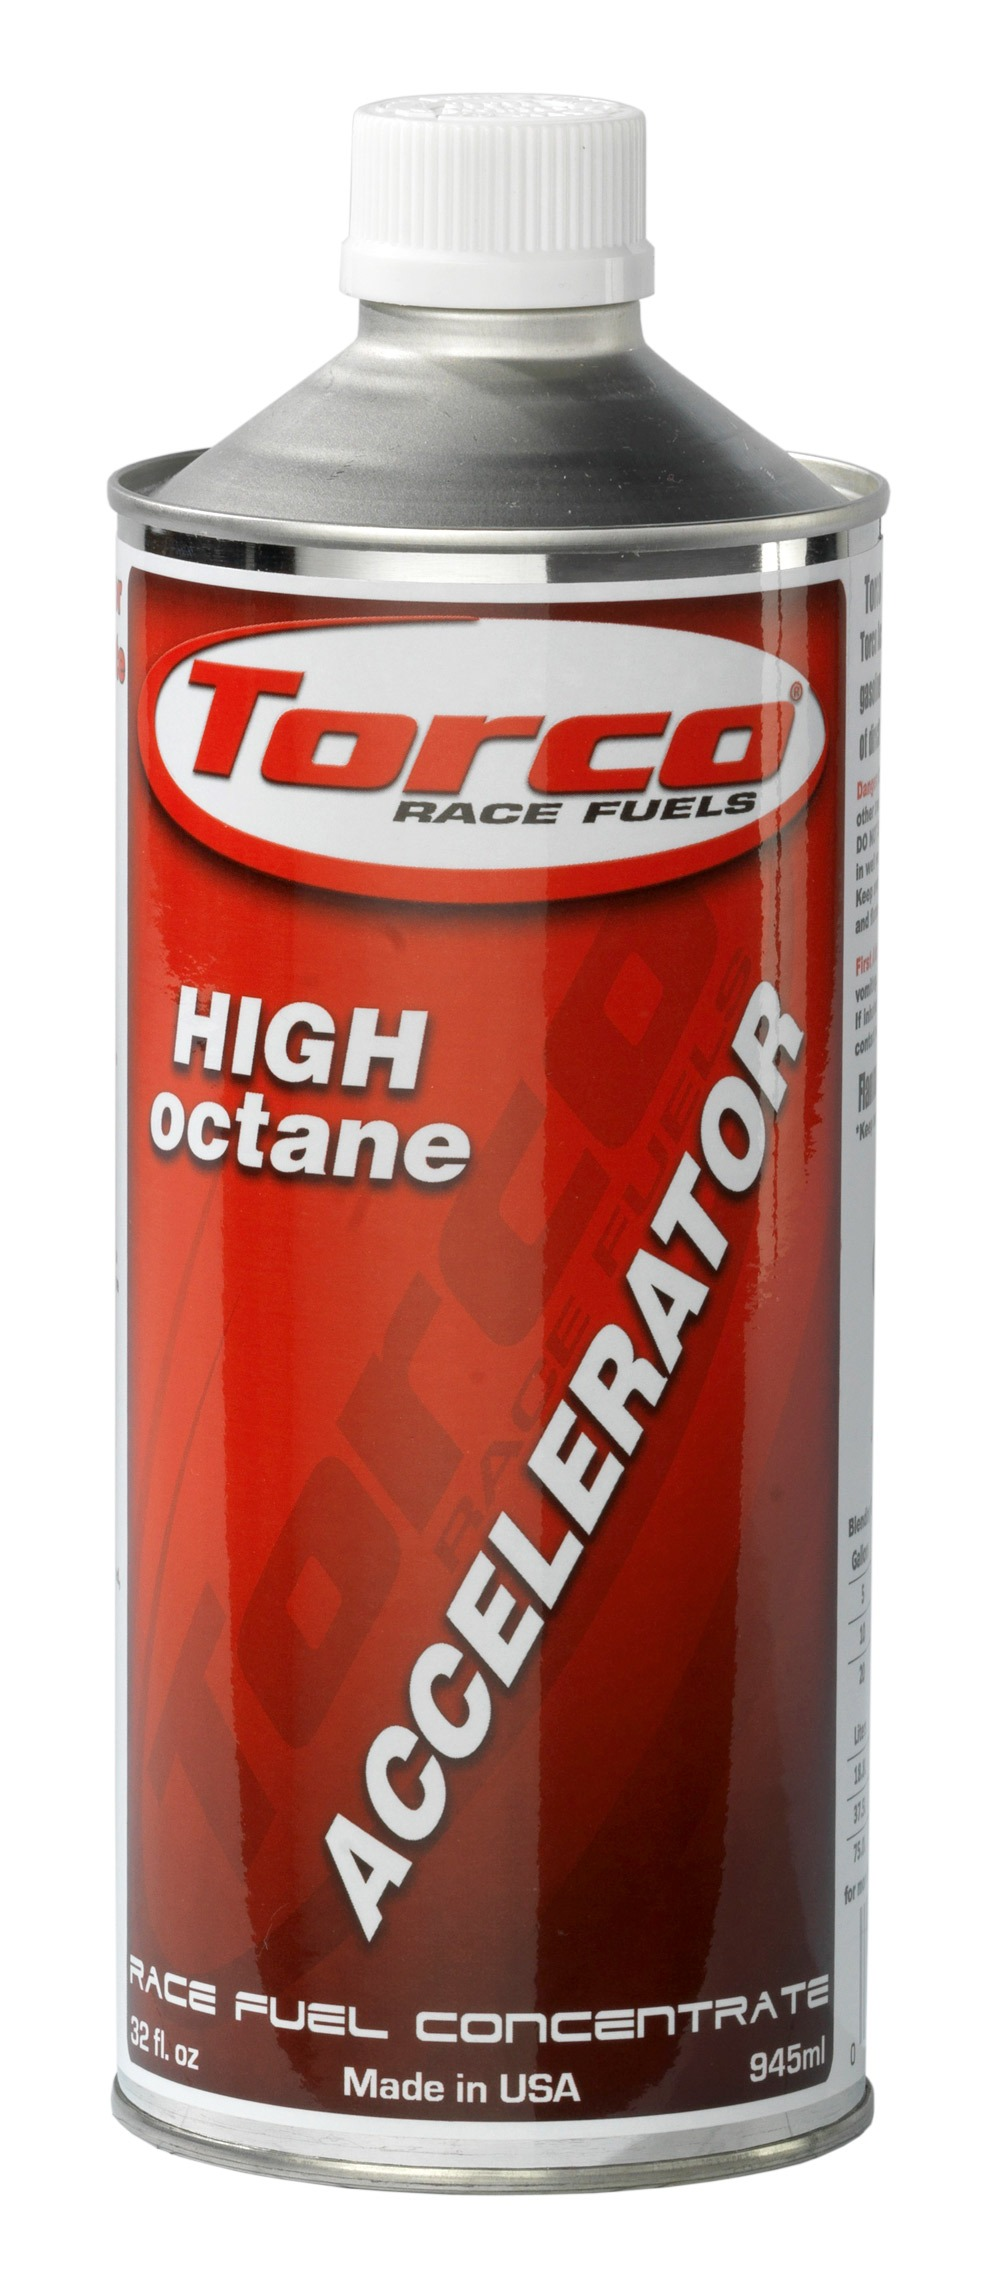 Best Octane Booster Reviews In 2019 - Complete Buying Guide